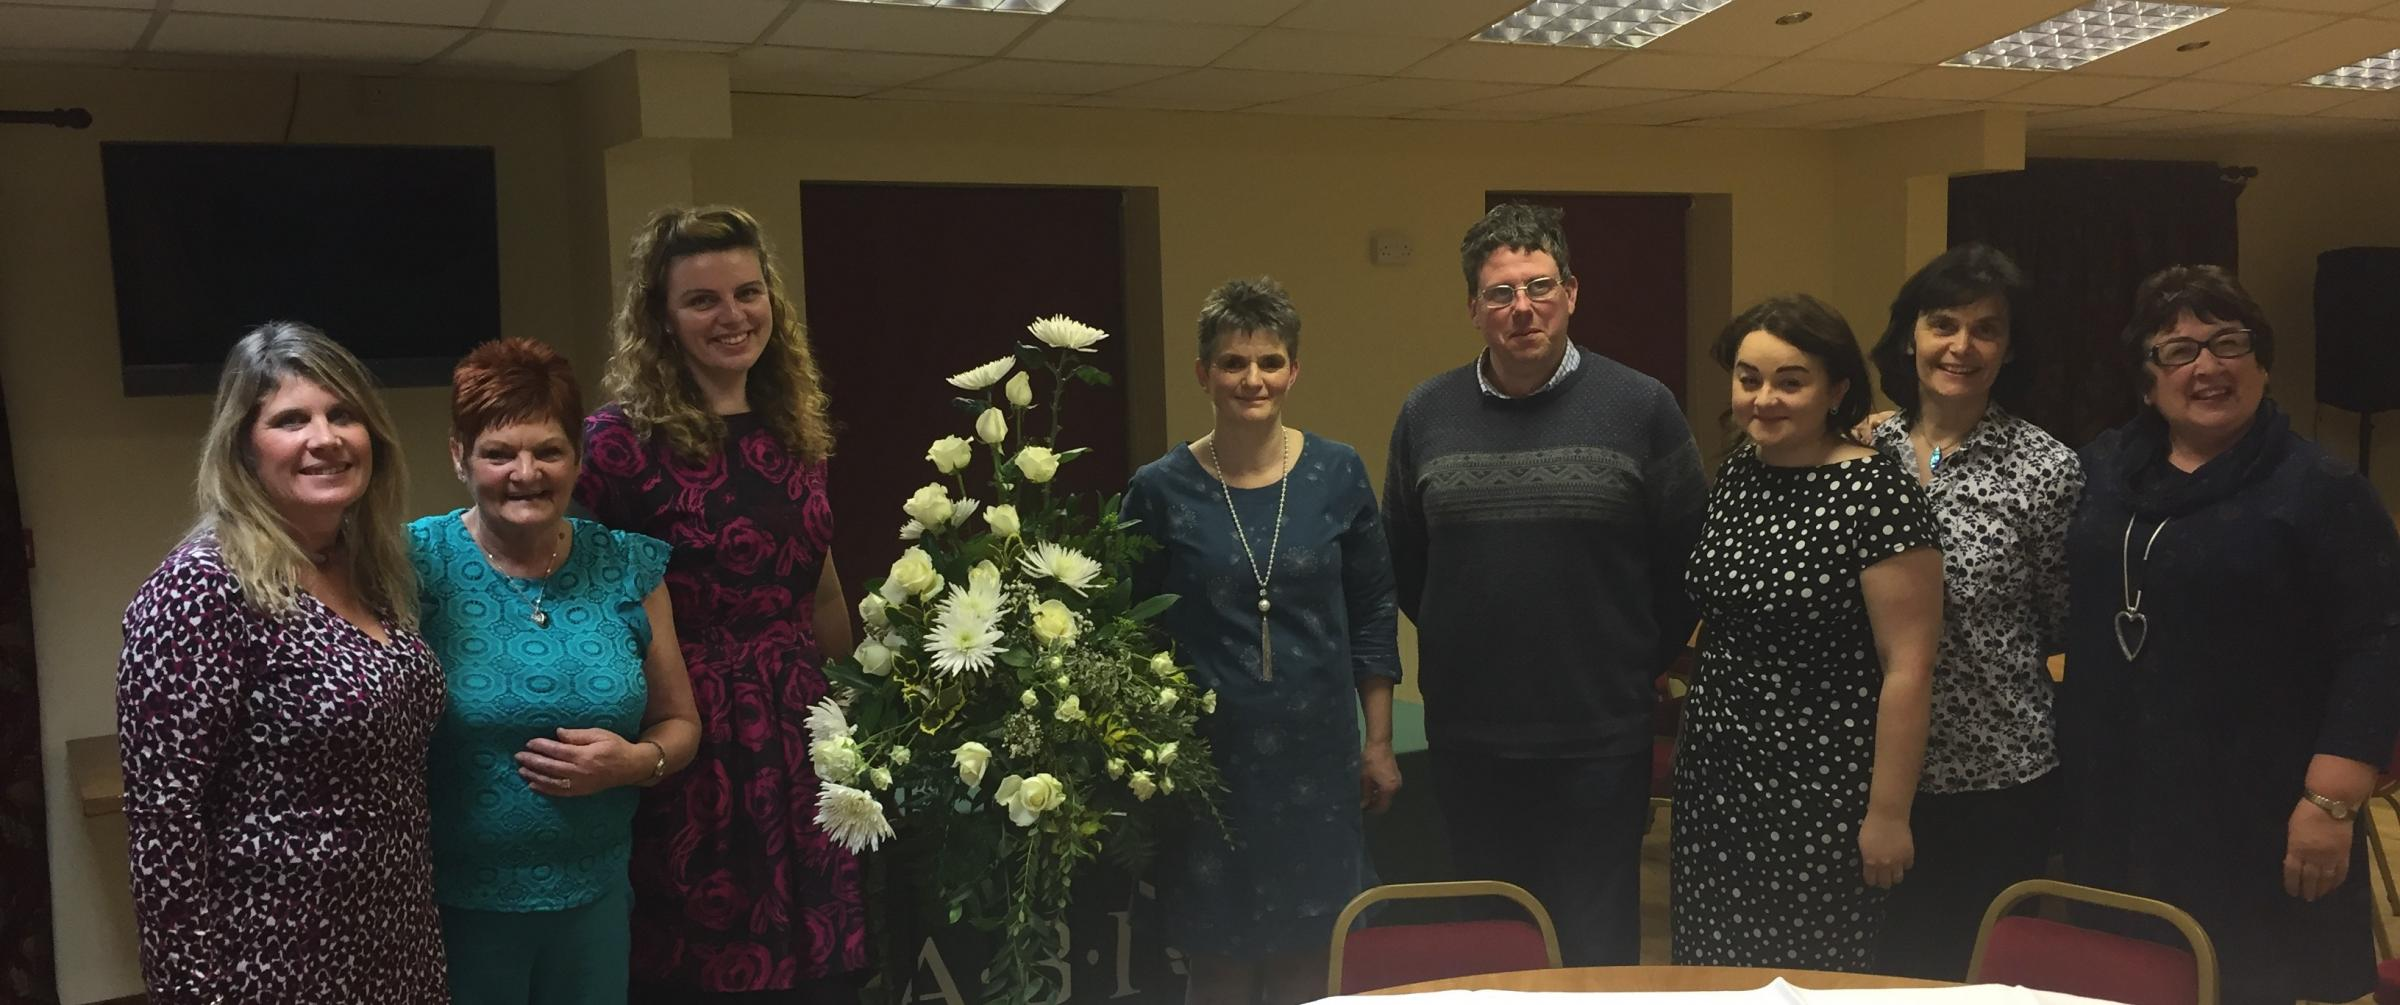 A fabulous floral art and musical evening at the Cobra Rugby Club in Meifod was a sell-out, bringing in over £800 for farming charity R.A.B.I. Chelsea Flower Show exhibitor Christine Higgs skilfully put together four winter-themed floral arrangement